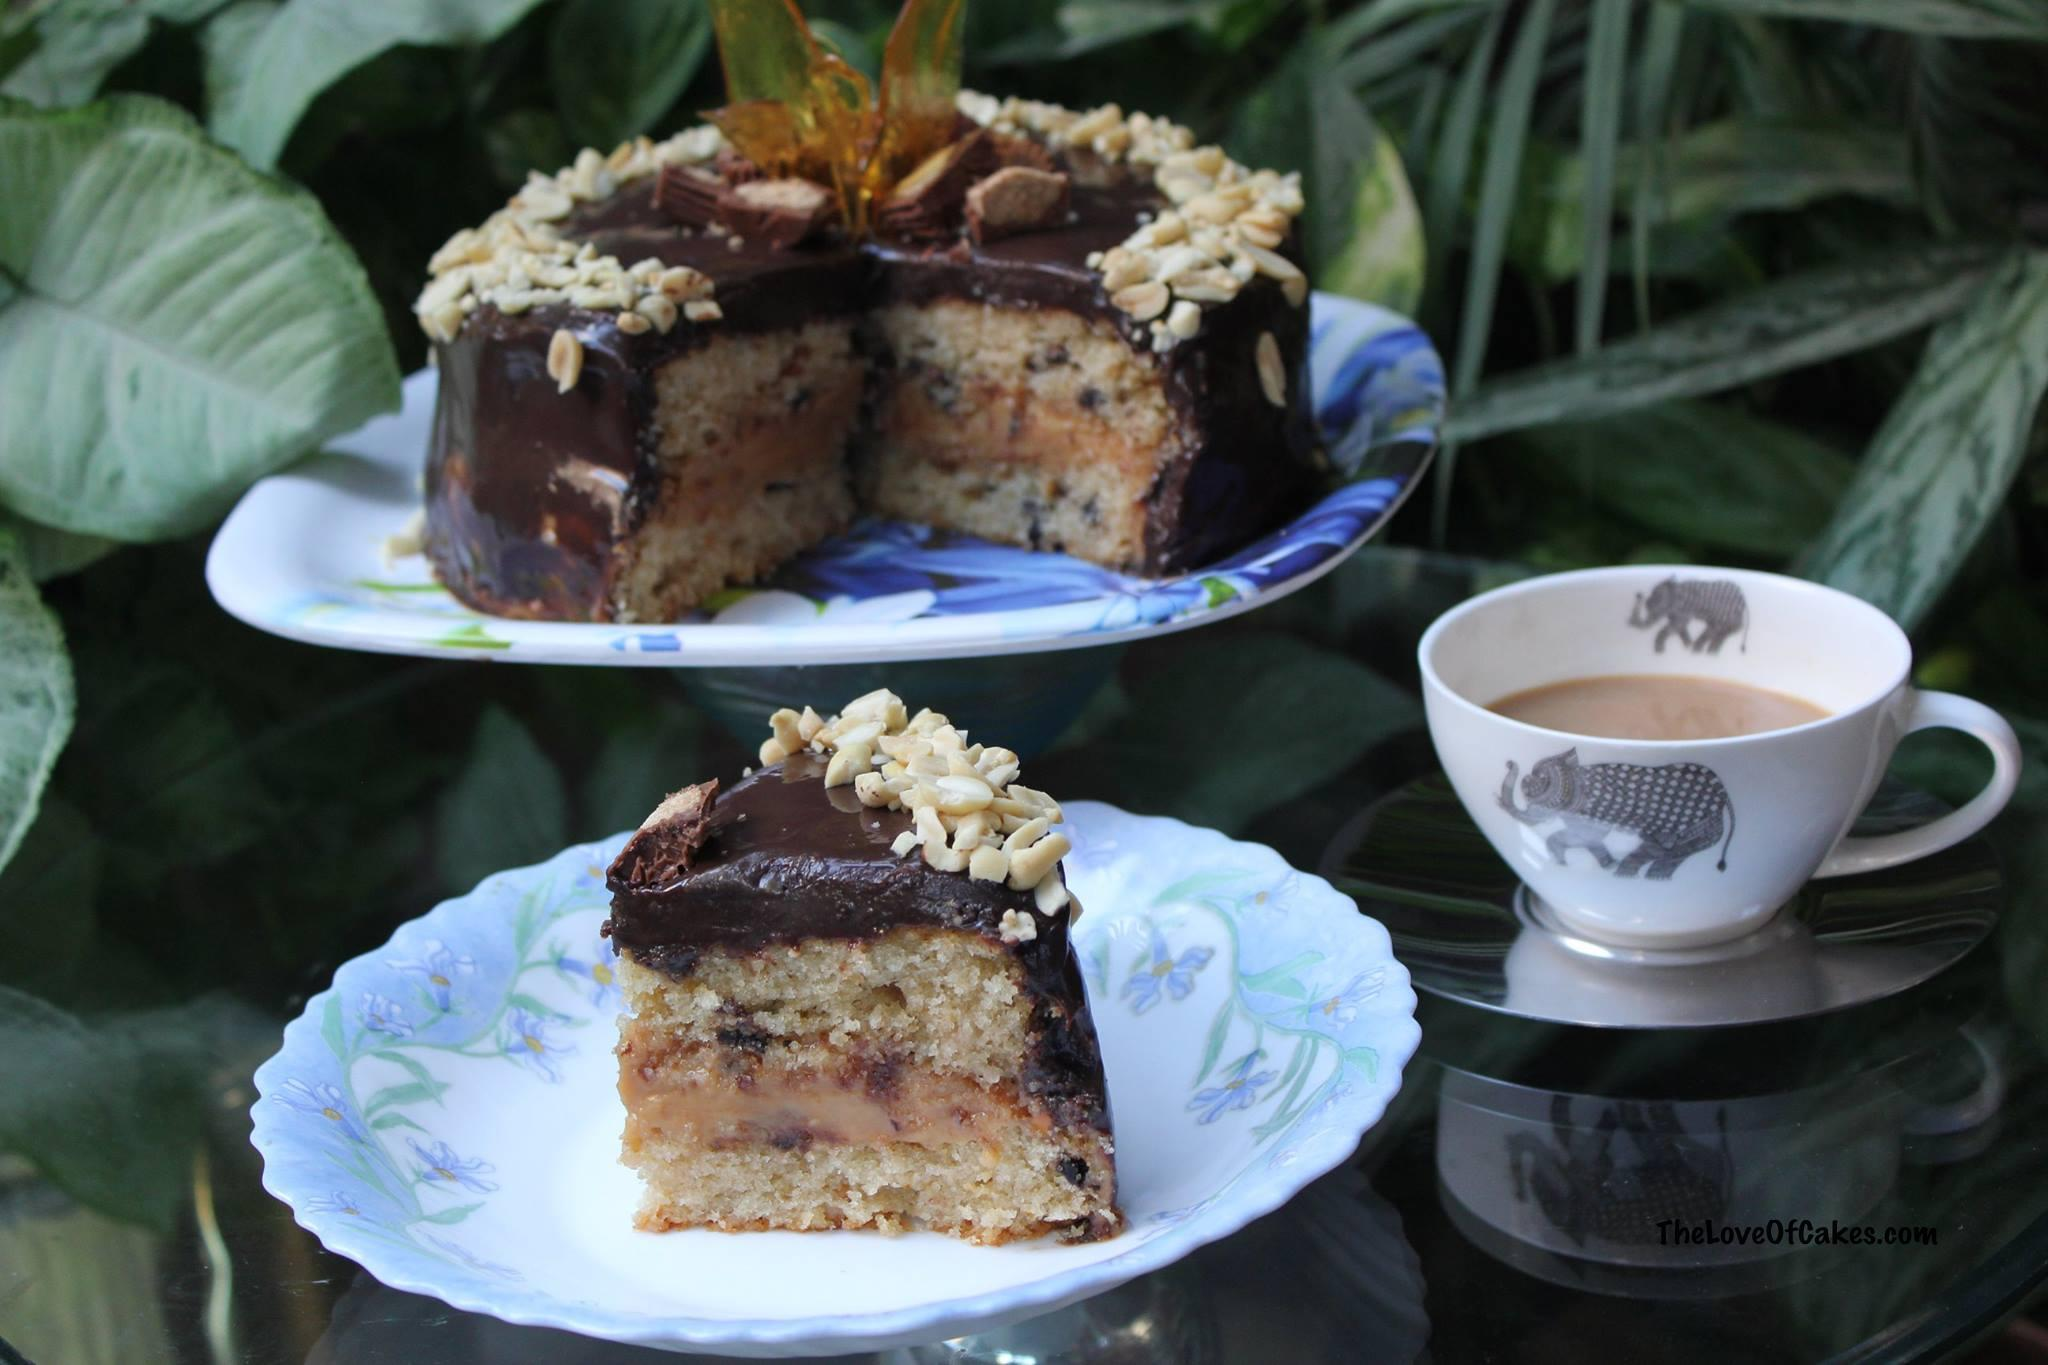 Peanut Butter Cake with Caramel Filling